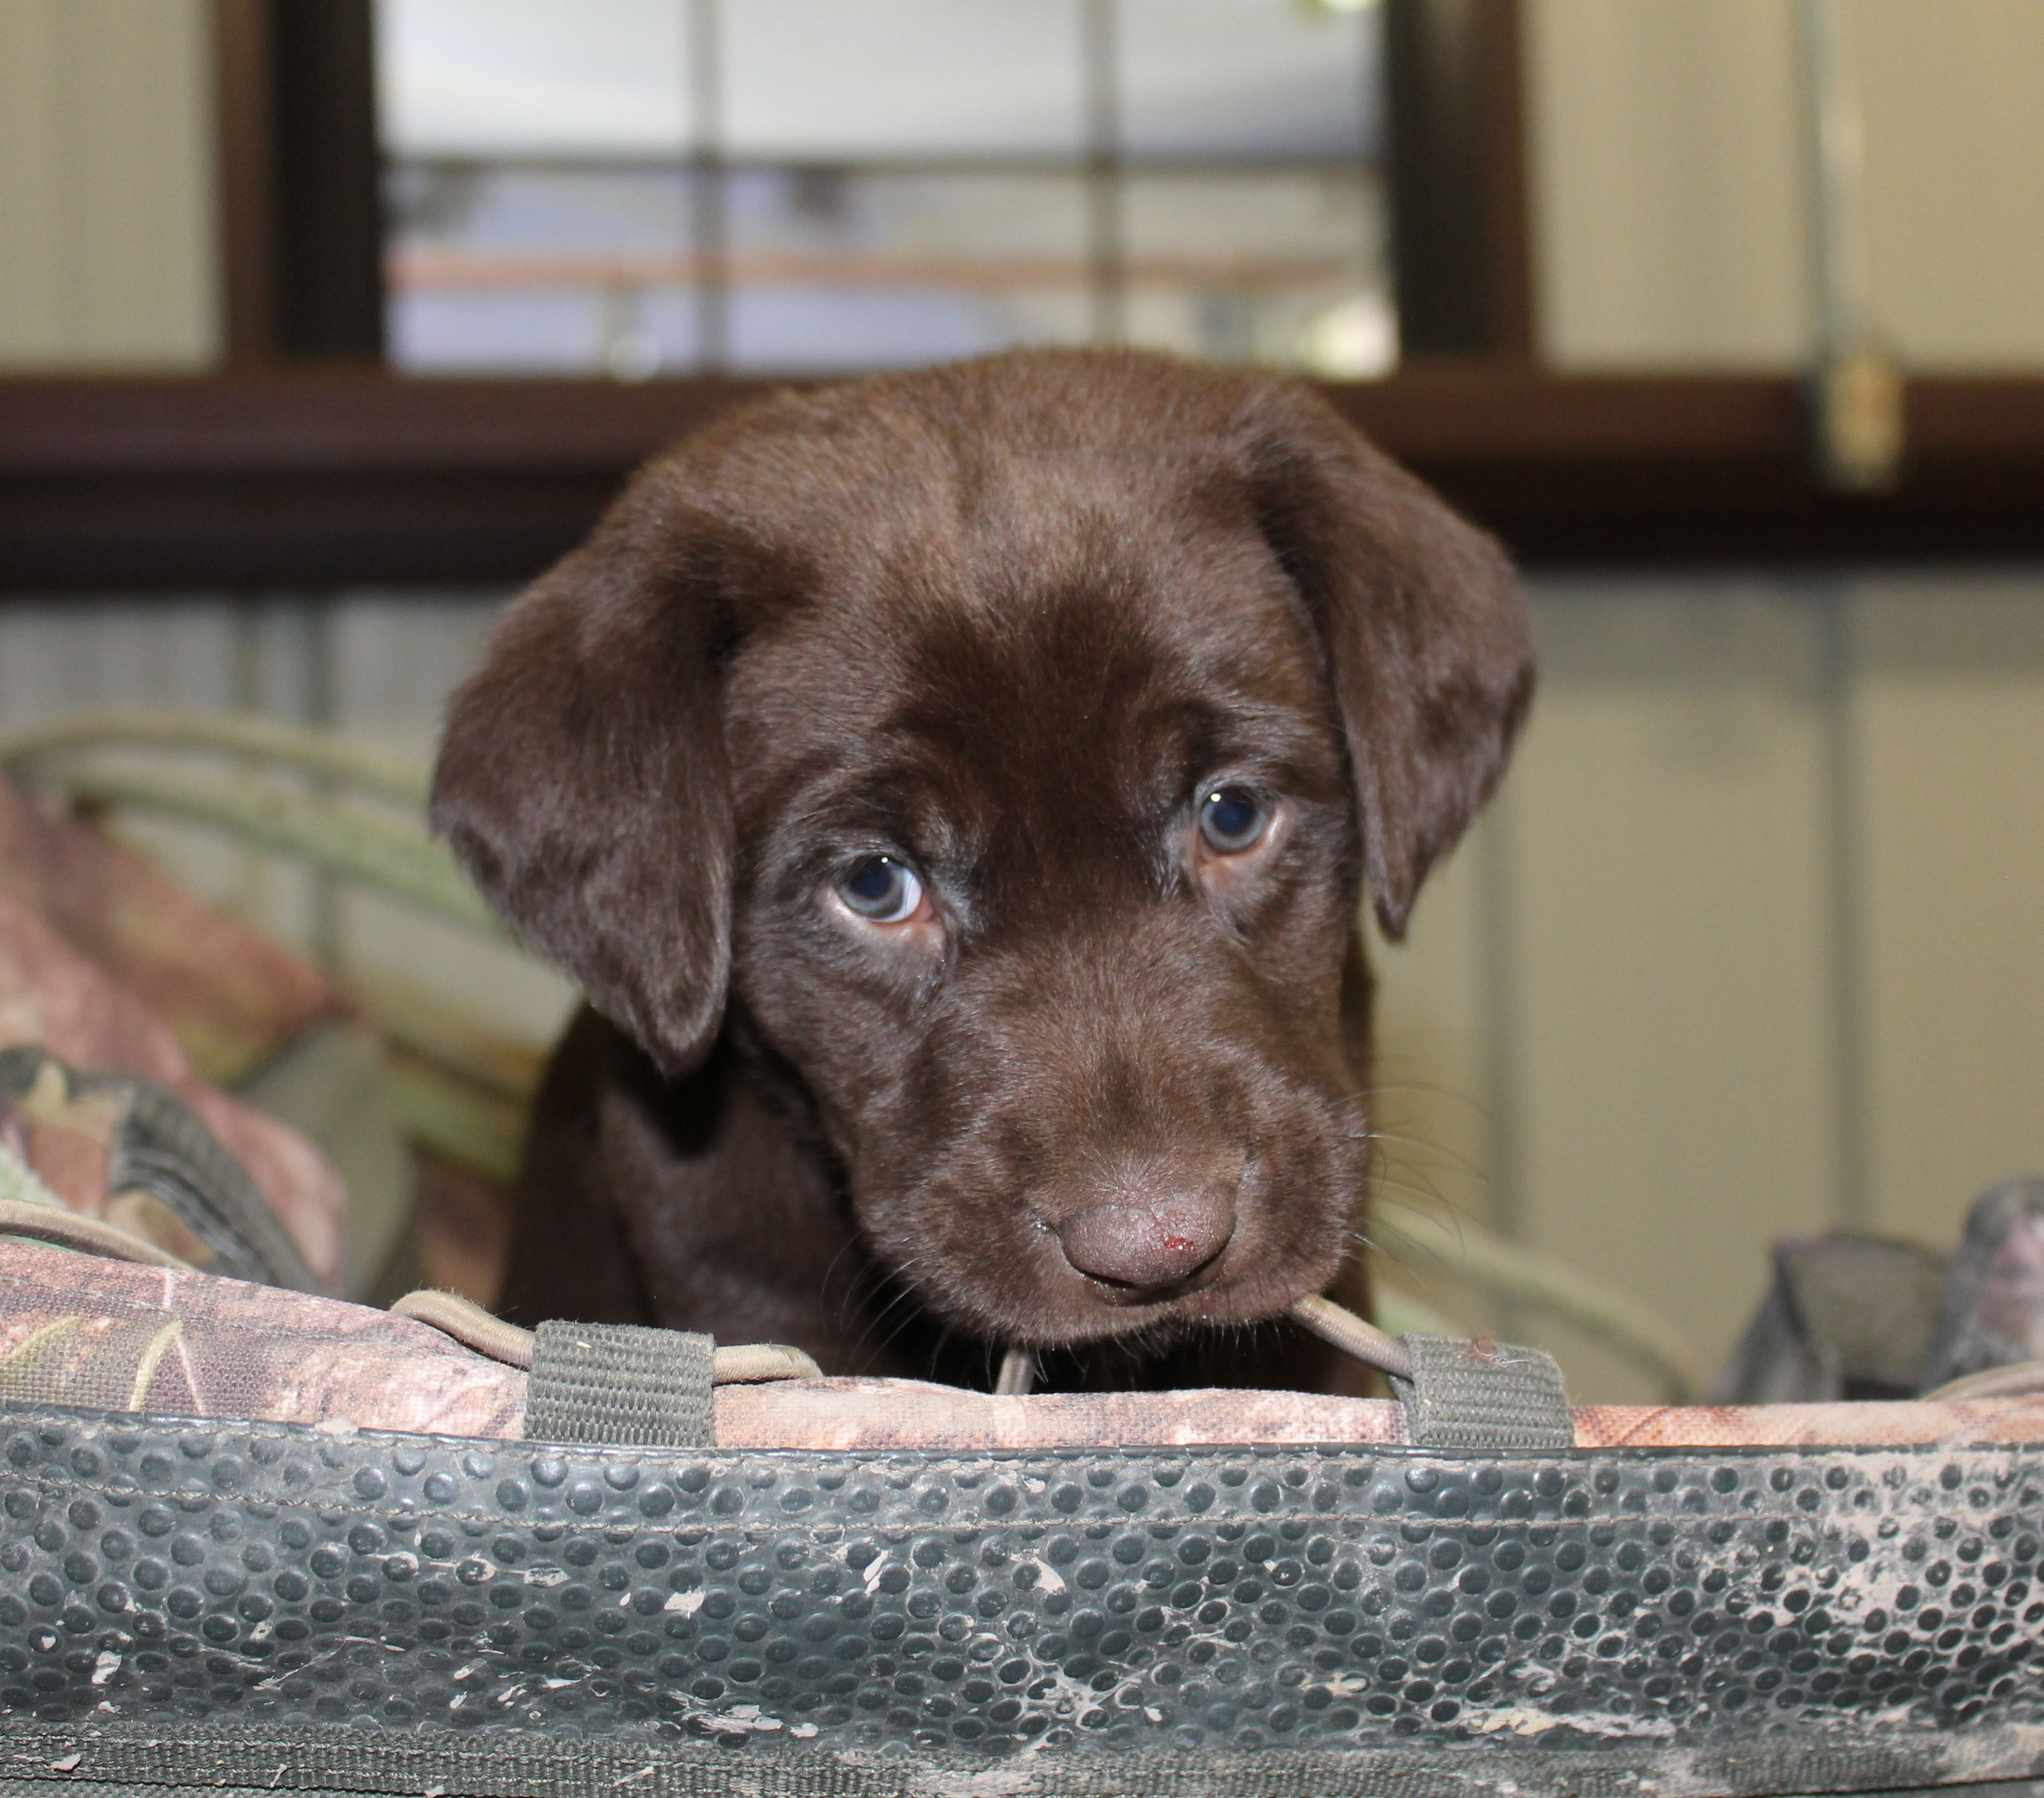 Chocolate Lab Puppies in Texas. Breeding quality